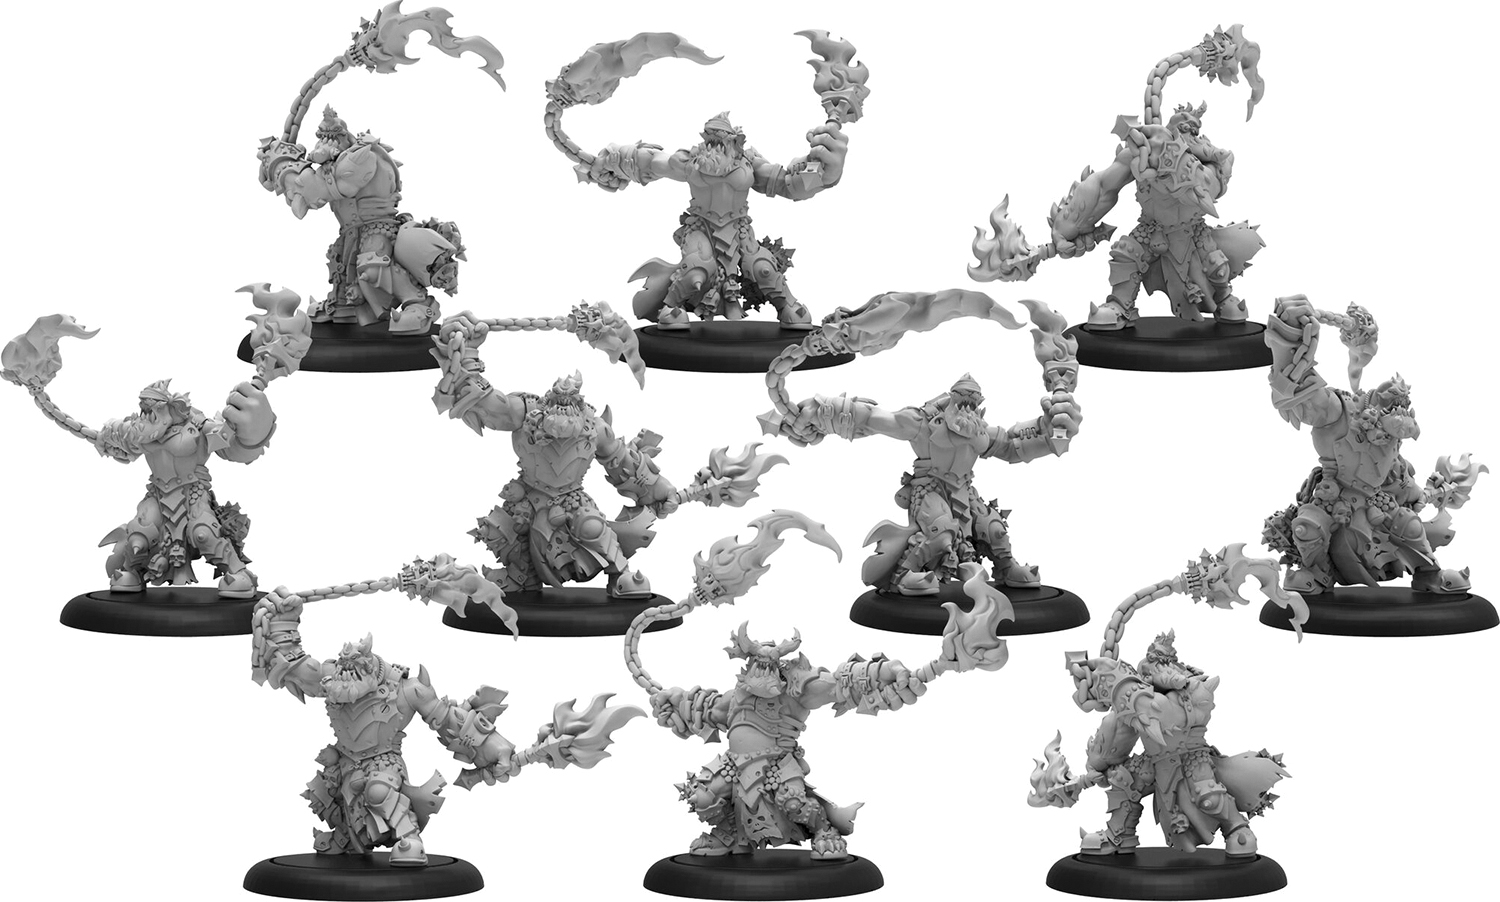 Warmachine: Cryx Blighted Trollkin Marauders Unit (10) (resin And White Metal) Box Front